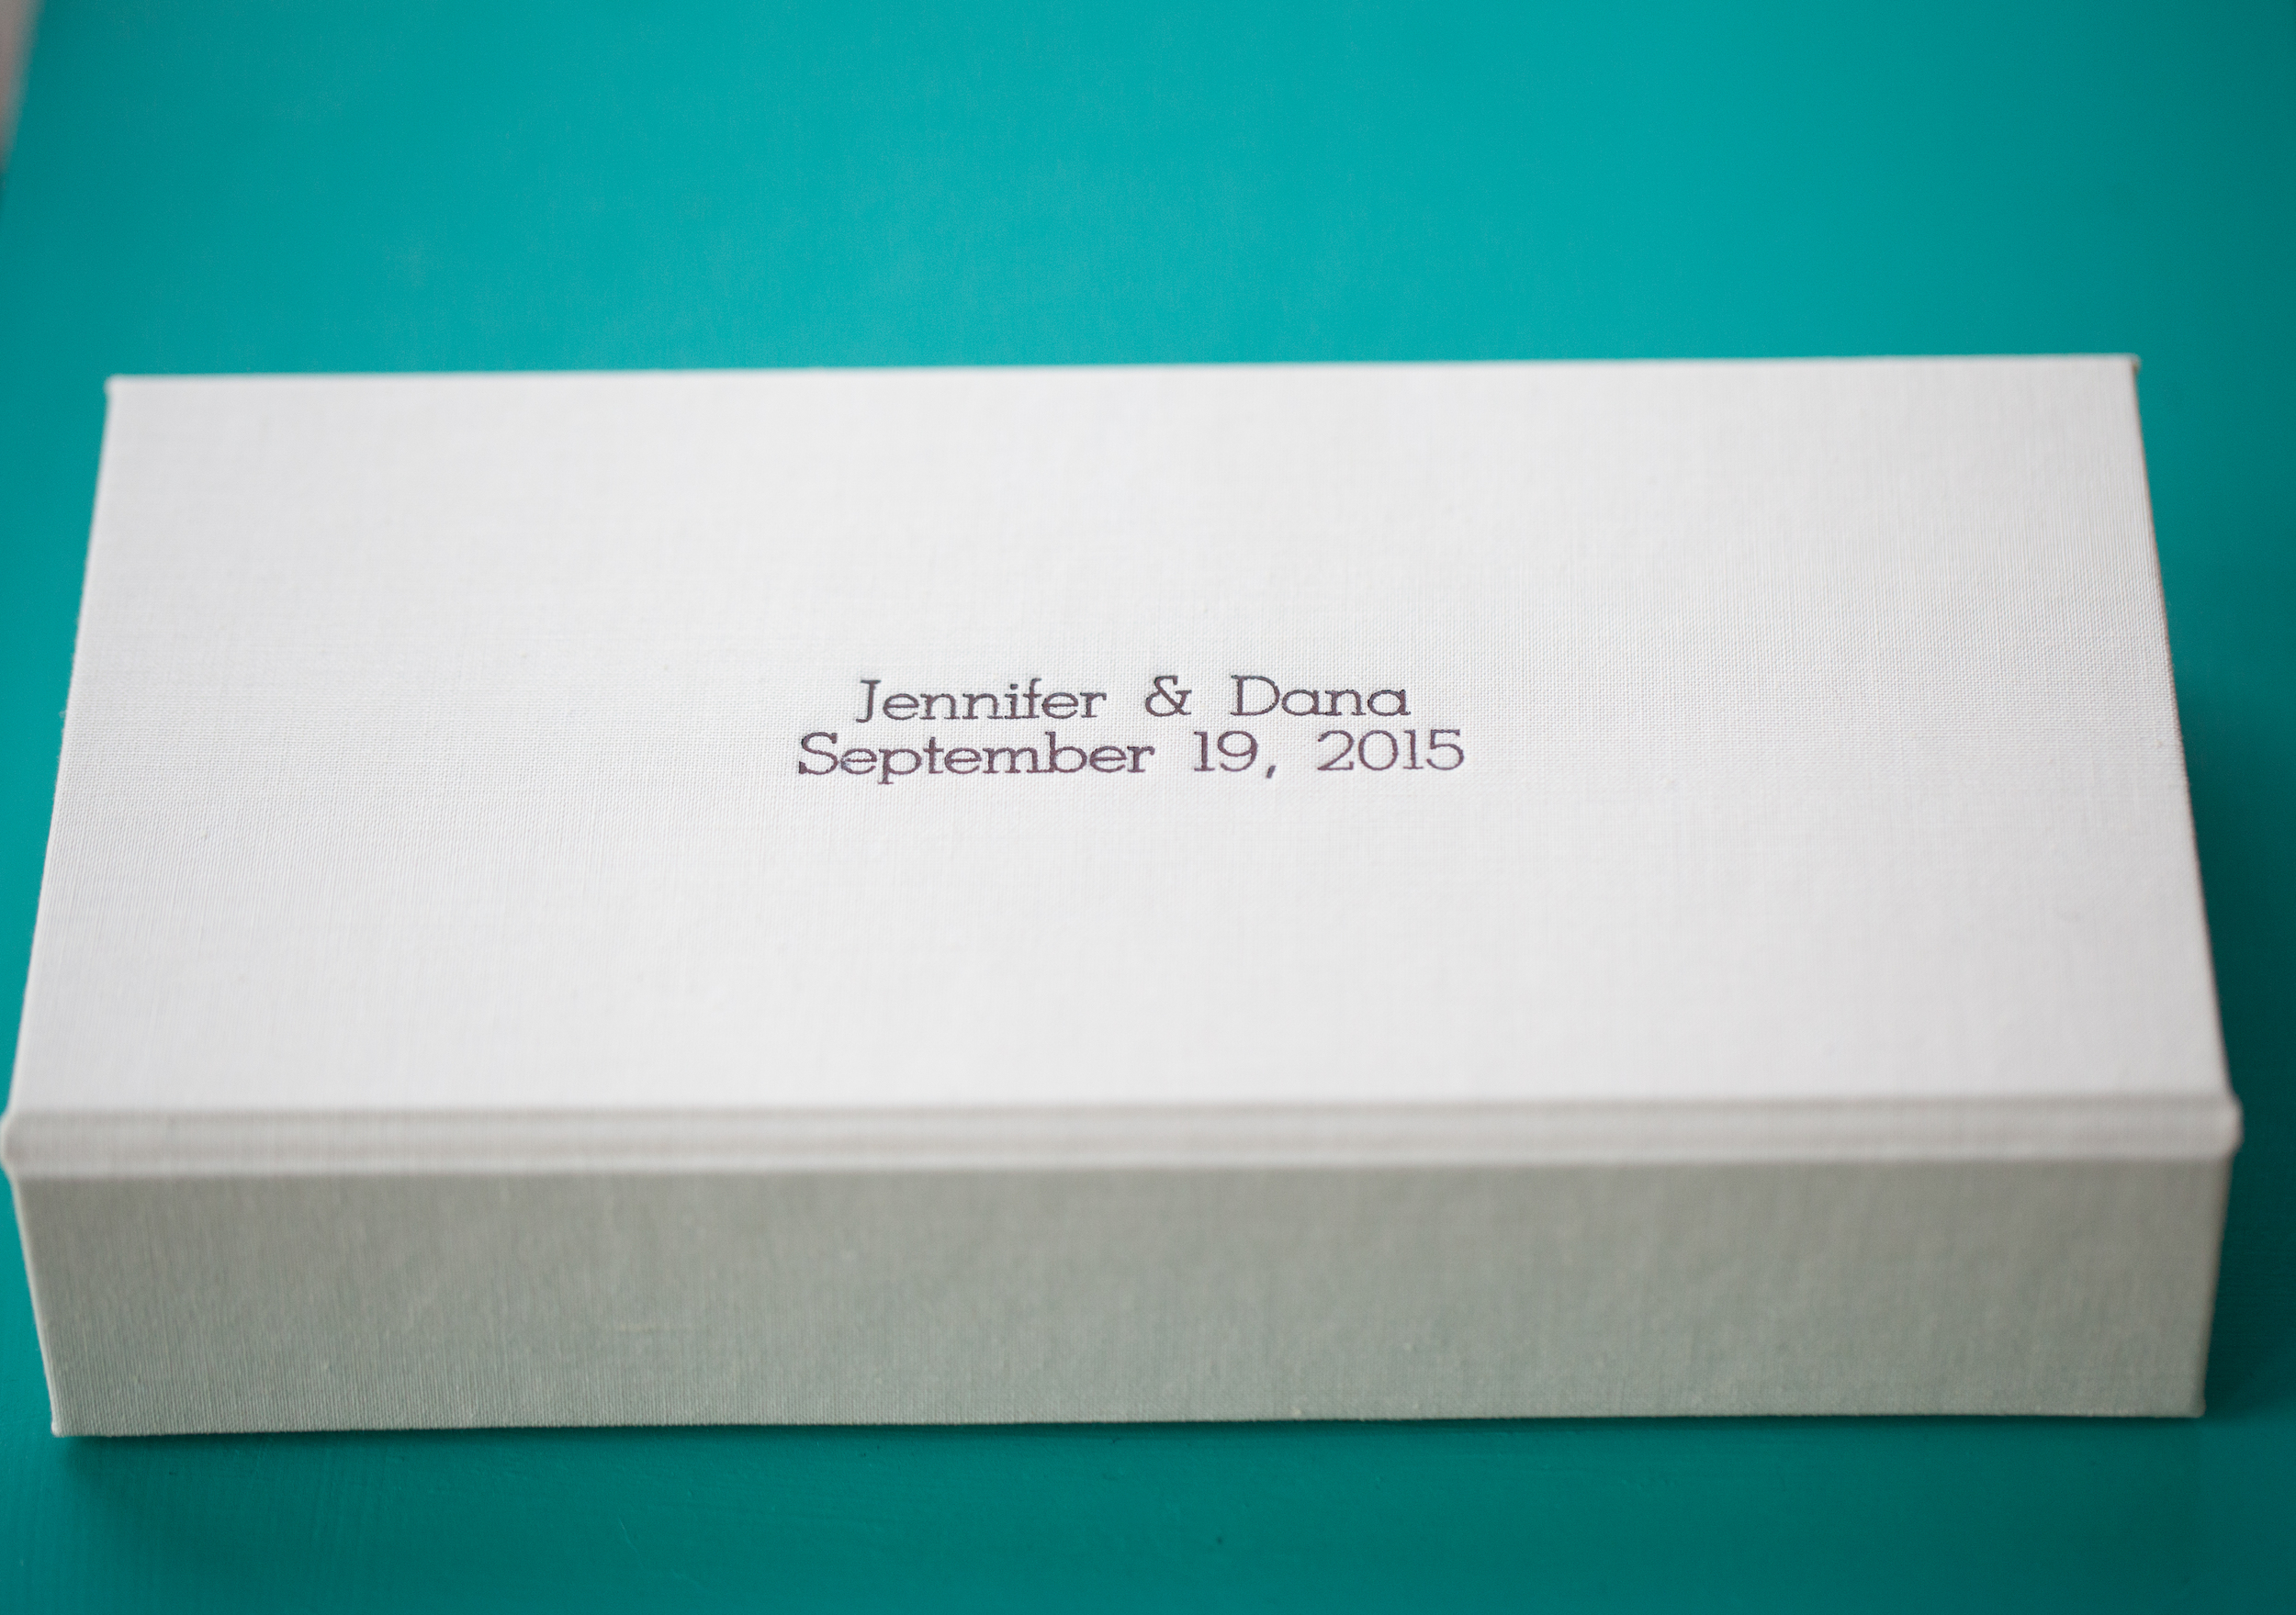 Presentation Box with Bride and Grooms Name Engraved